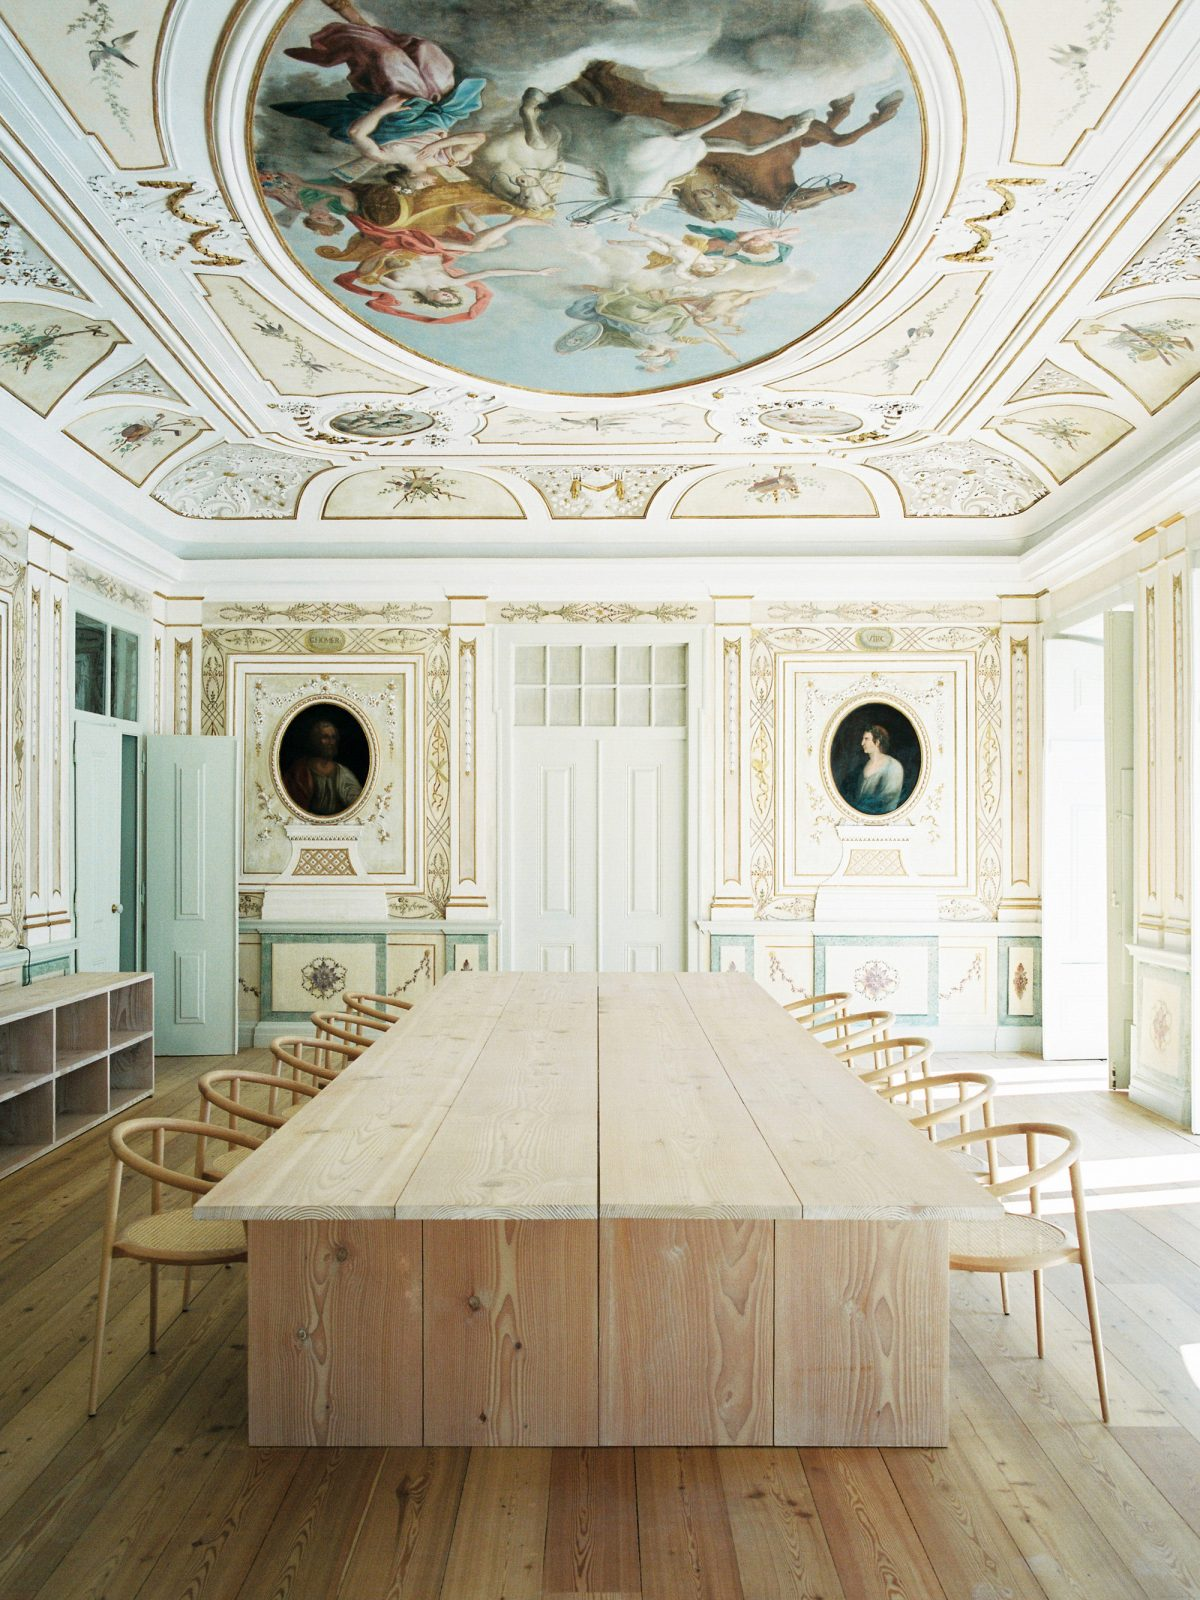 Best Architecture Projects: Discover Michelango Inspiration In A Lisbon Atelier architecture Best Architecture Projects: Discover Michelango Inspiration In A Lisbon Atelier AMA Cec  lio 1 1 e1570726055503